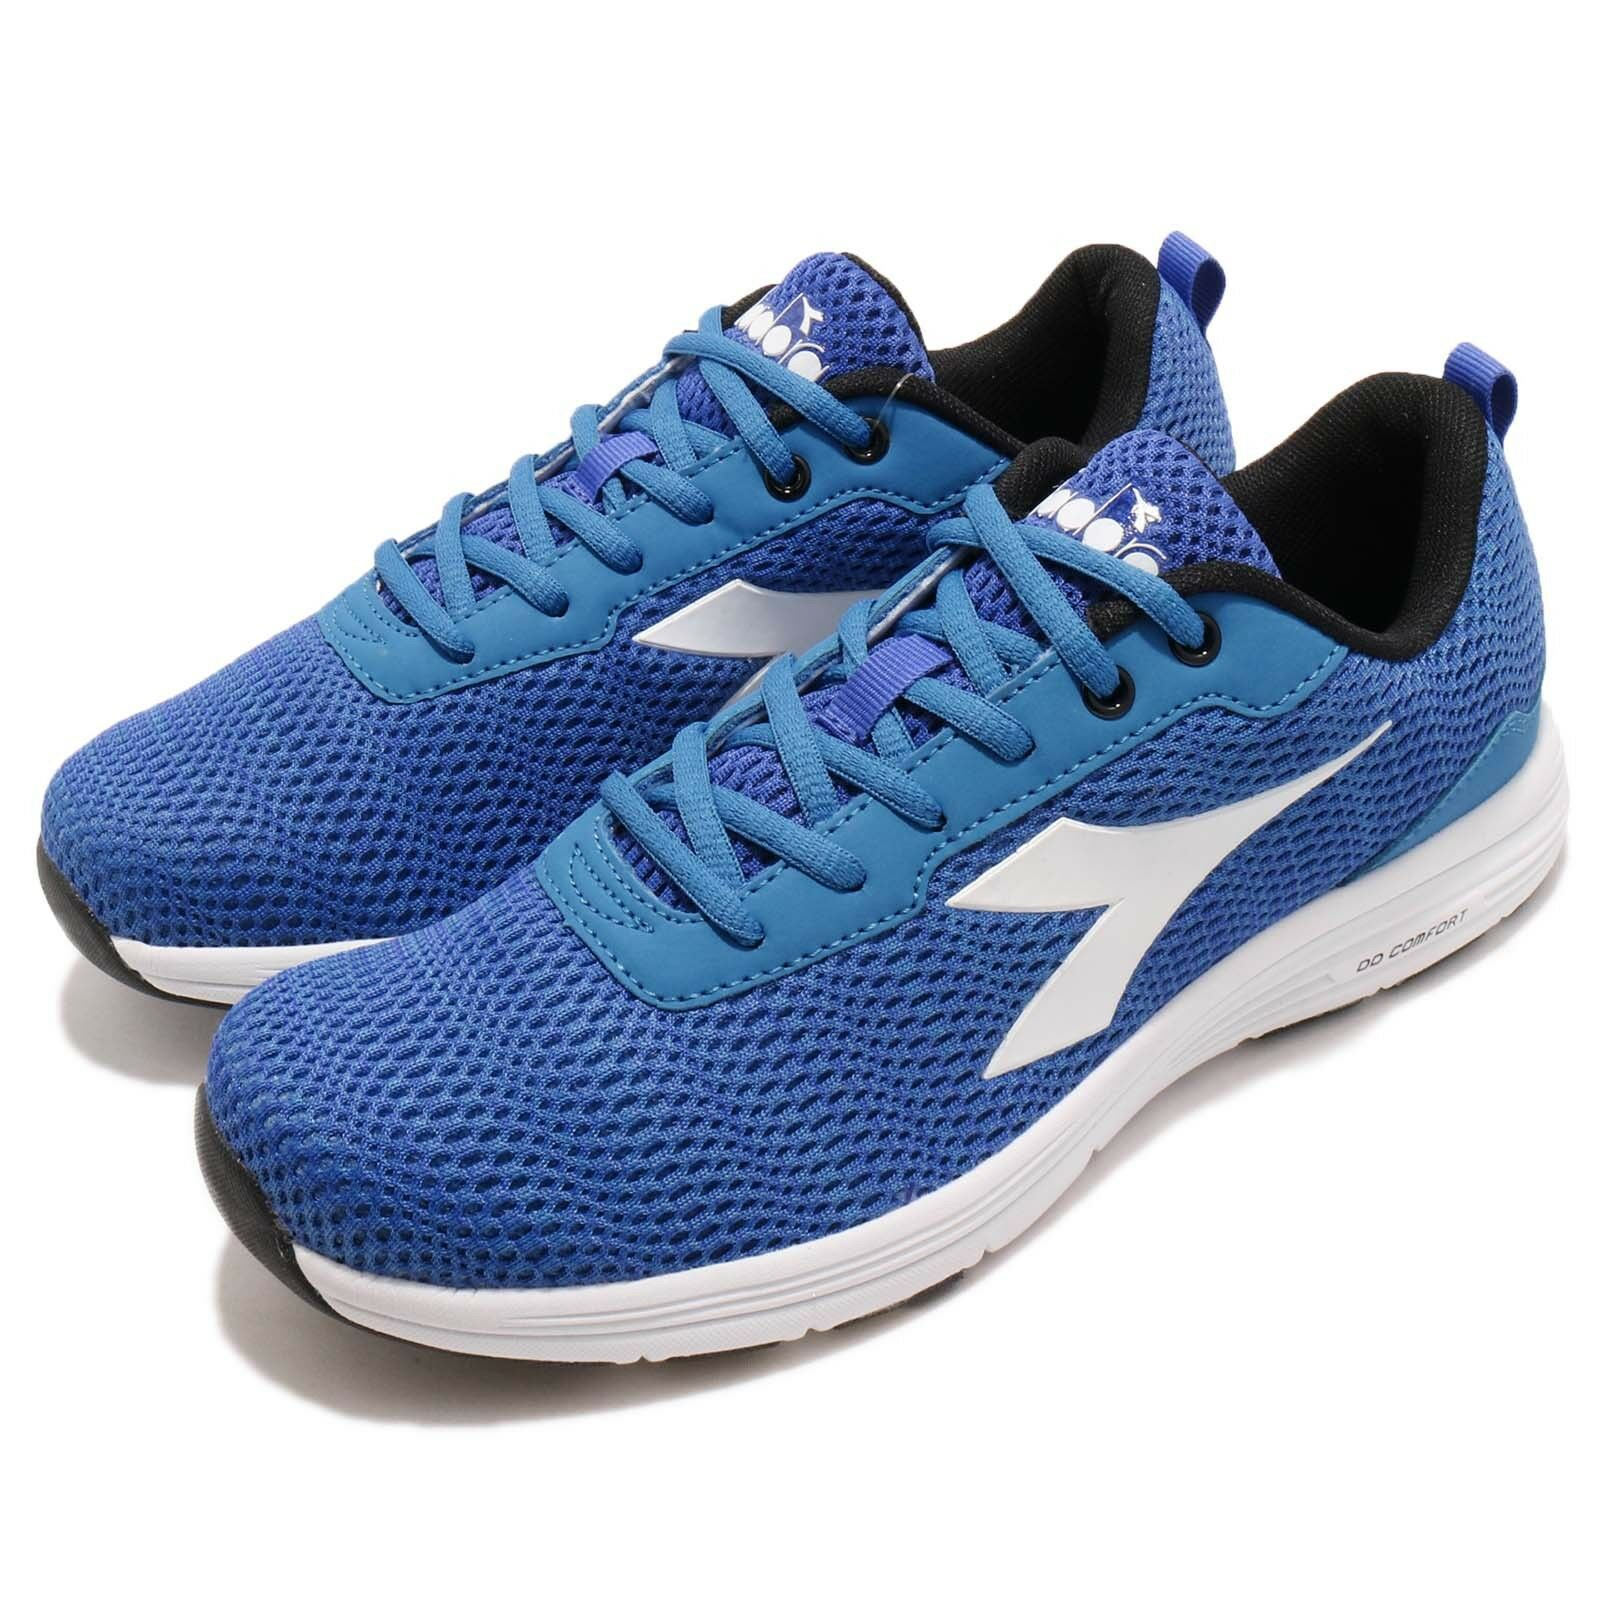 Diadora Swan 2 blueee White Men Running Walking  Casual shoes Sneaker DA174036-C3484  best sale